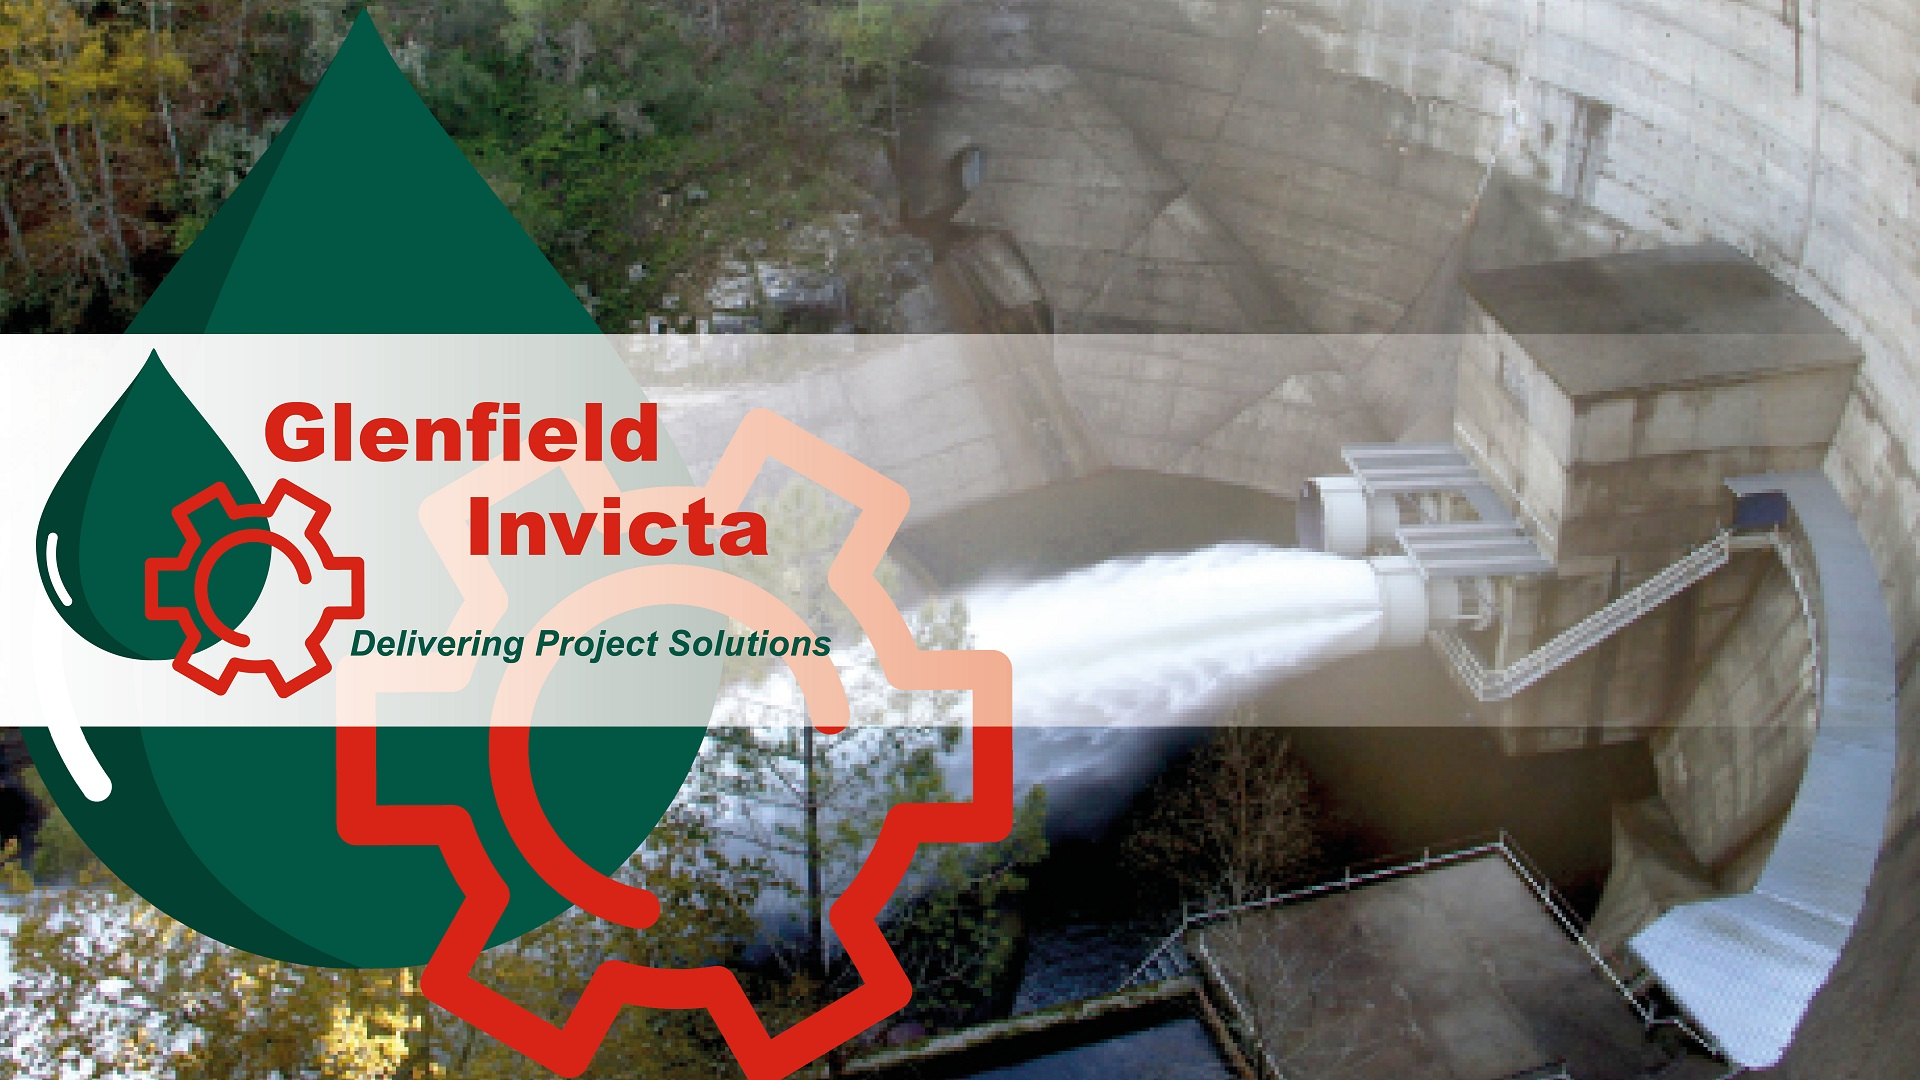 Glenfield Invicta